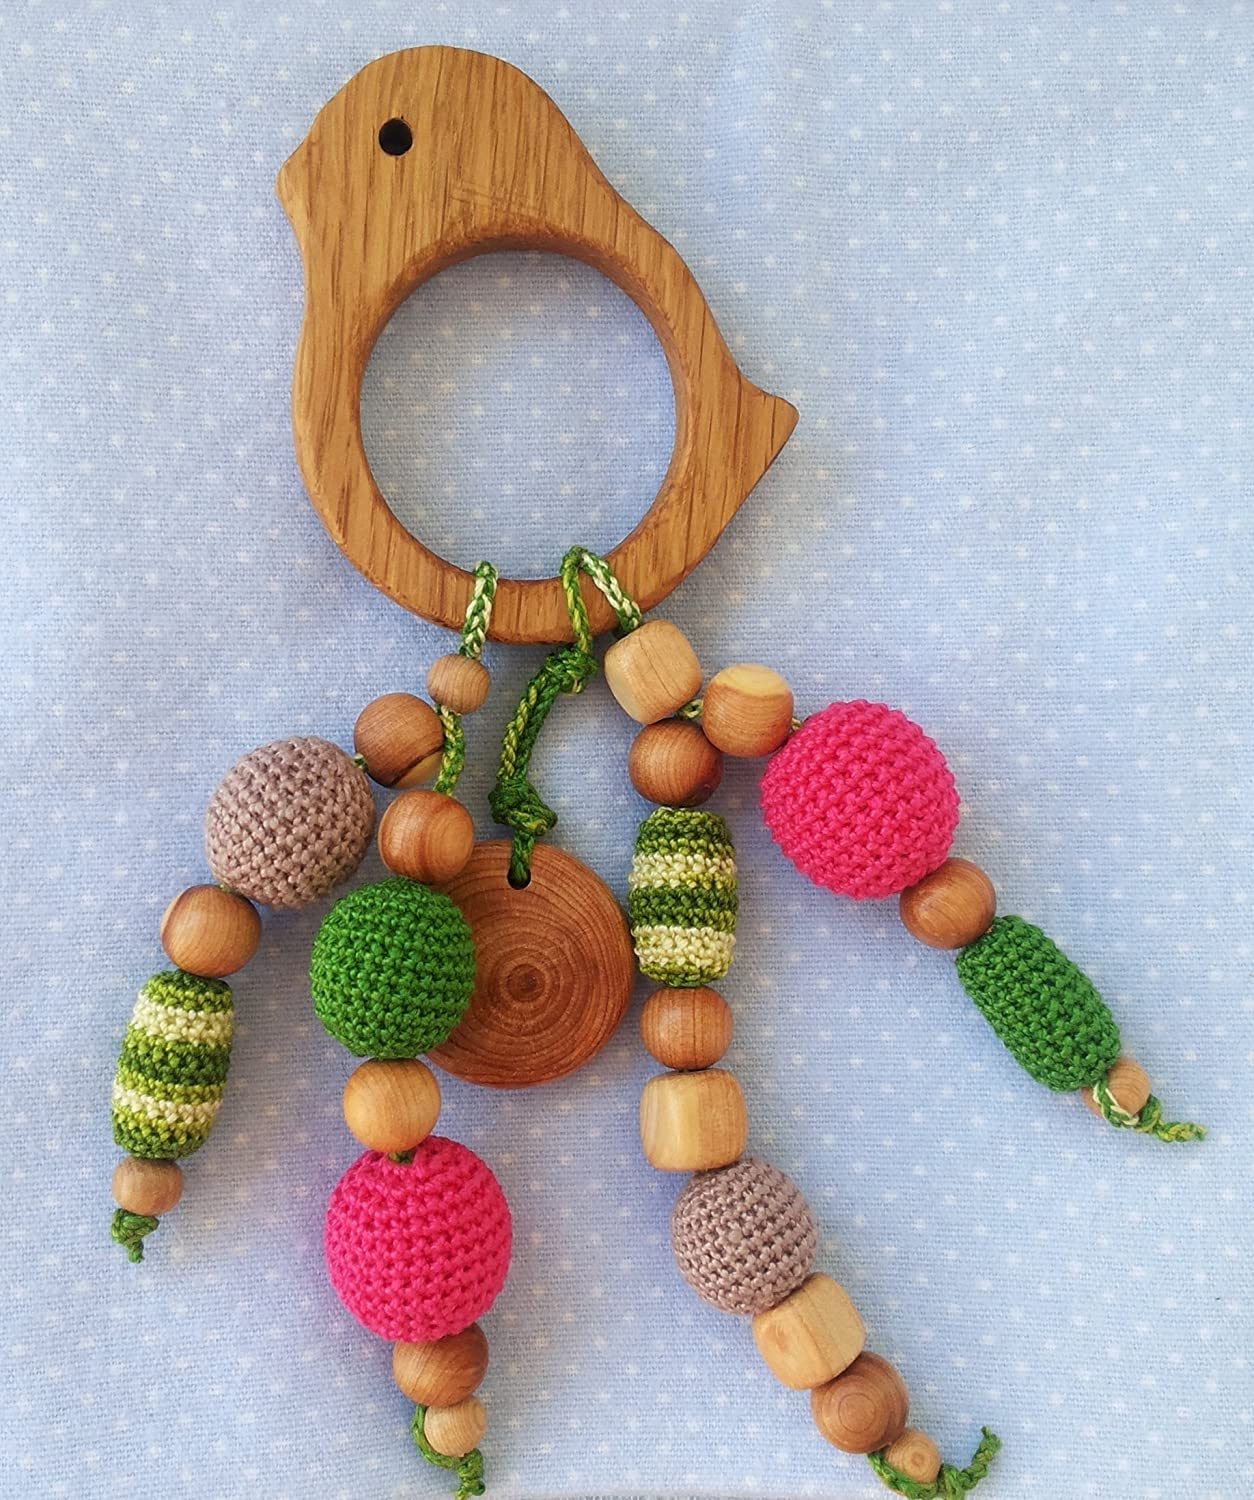 Organic, natural wooden teether - the first toy baby, newborn gift, bird teethers provide a safe teething